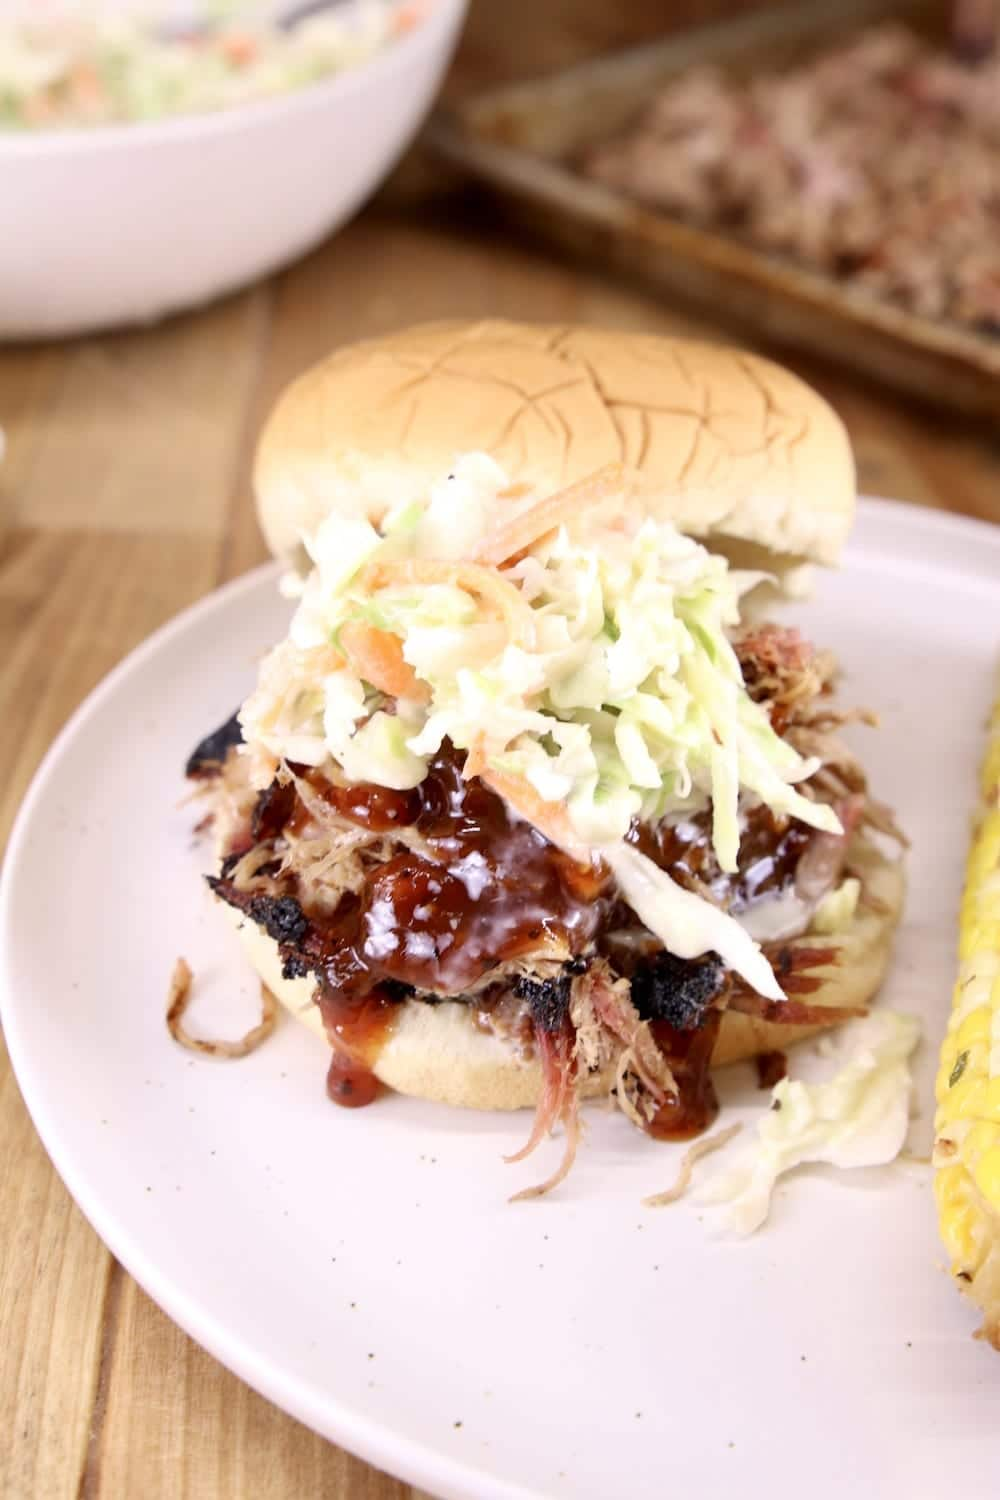 pulled pork bbq sandwich with slaw on a plate